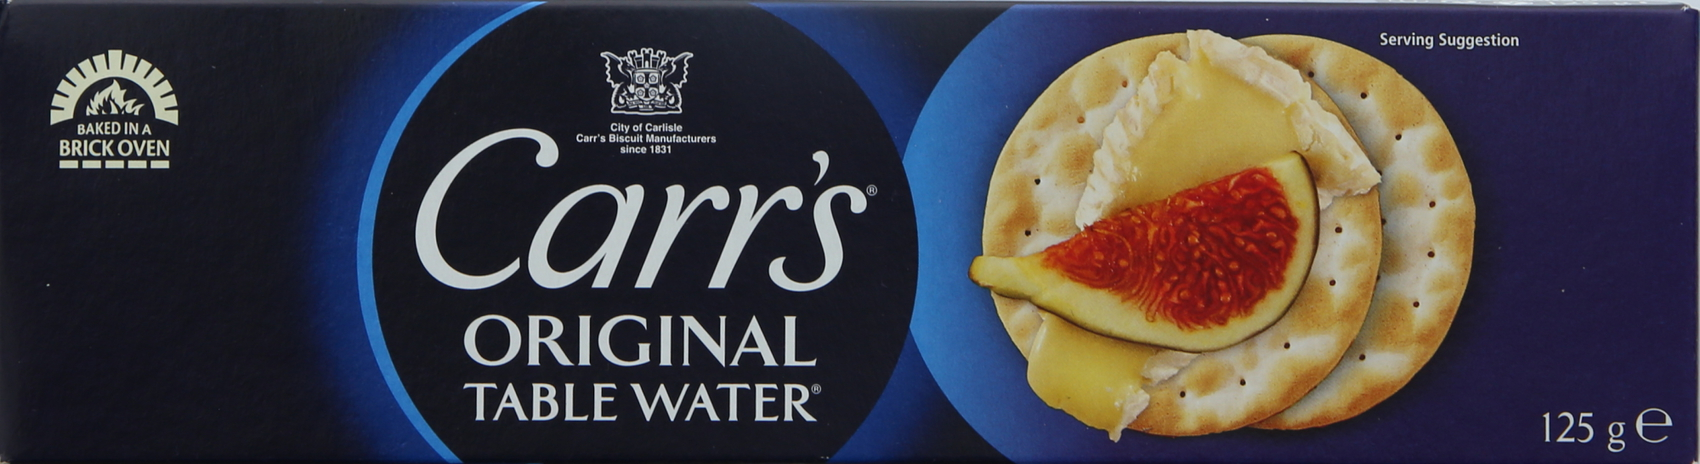 CARRS TABLE WATERS CRACKERS 125G